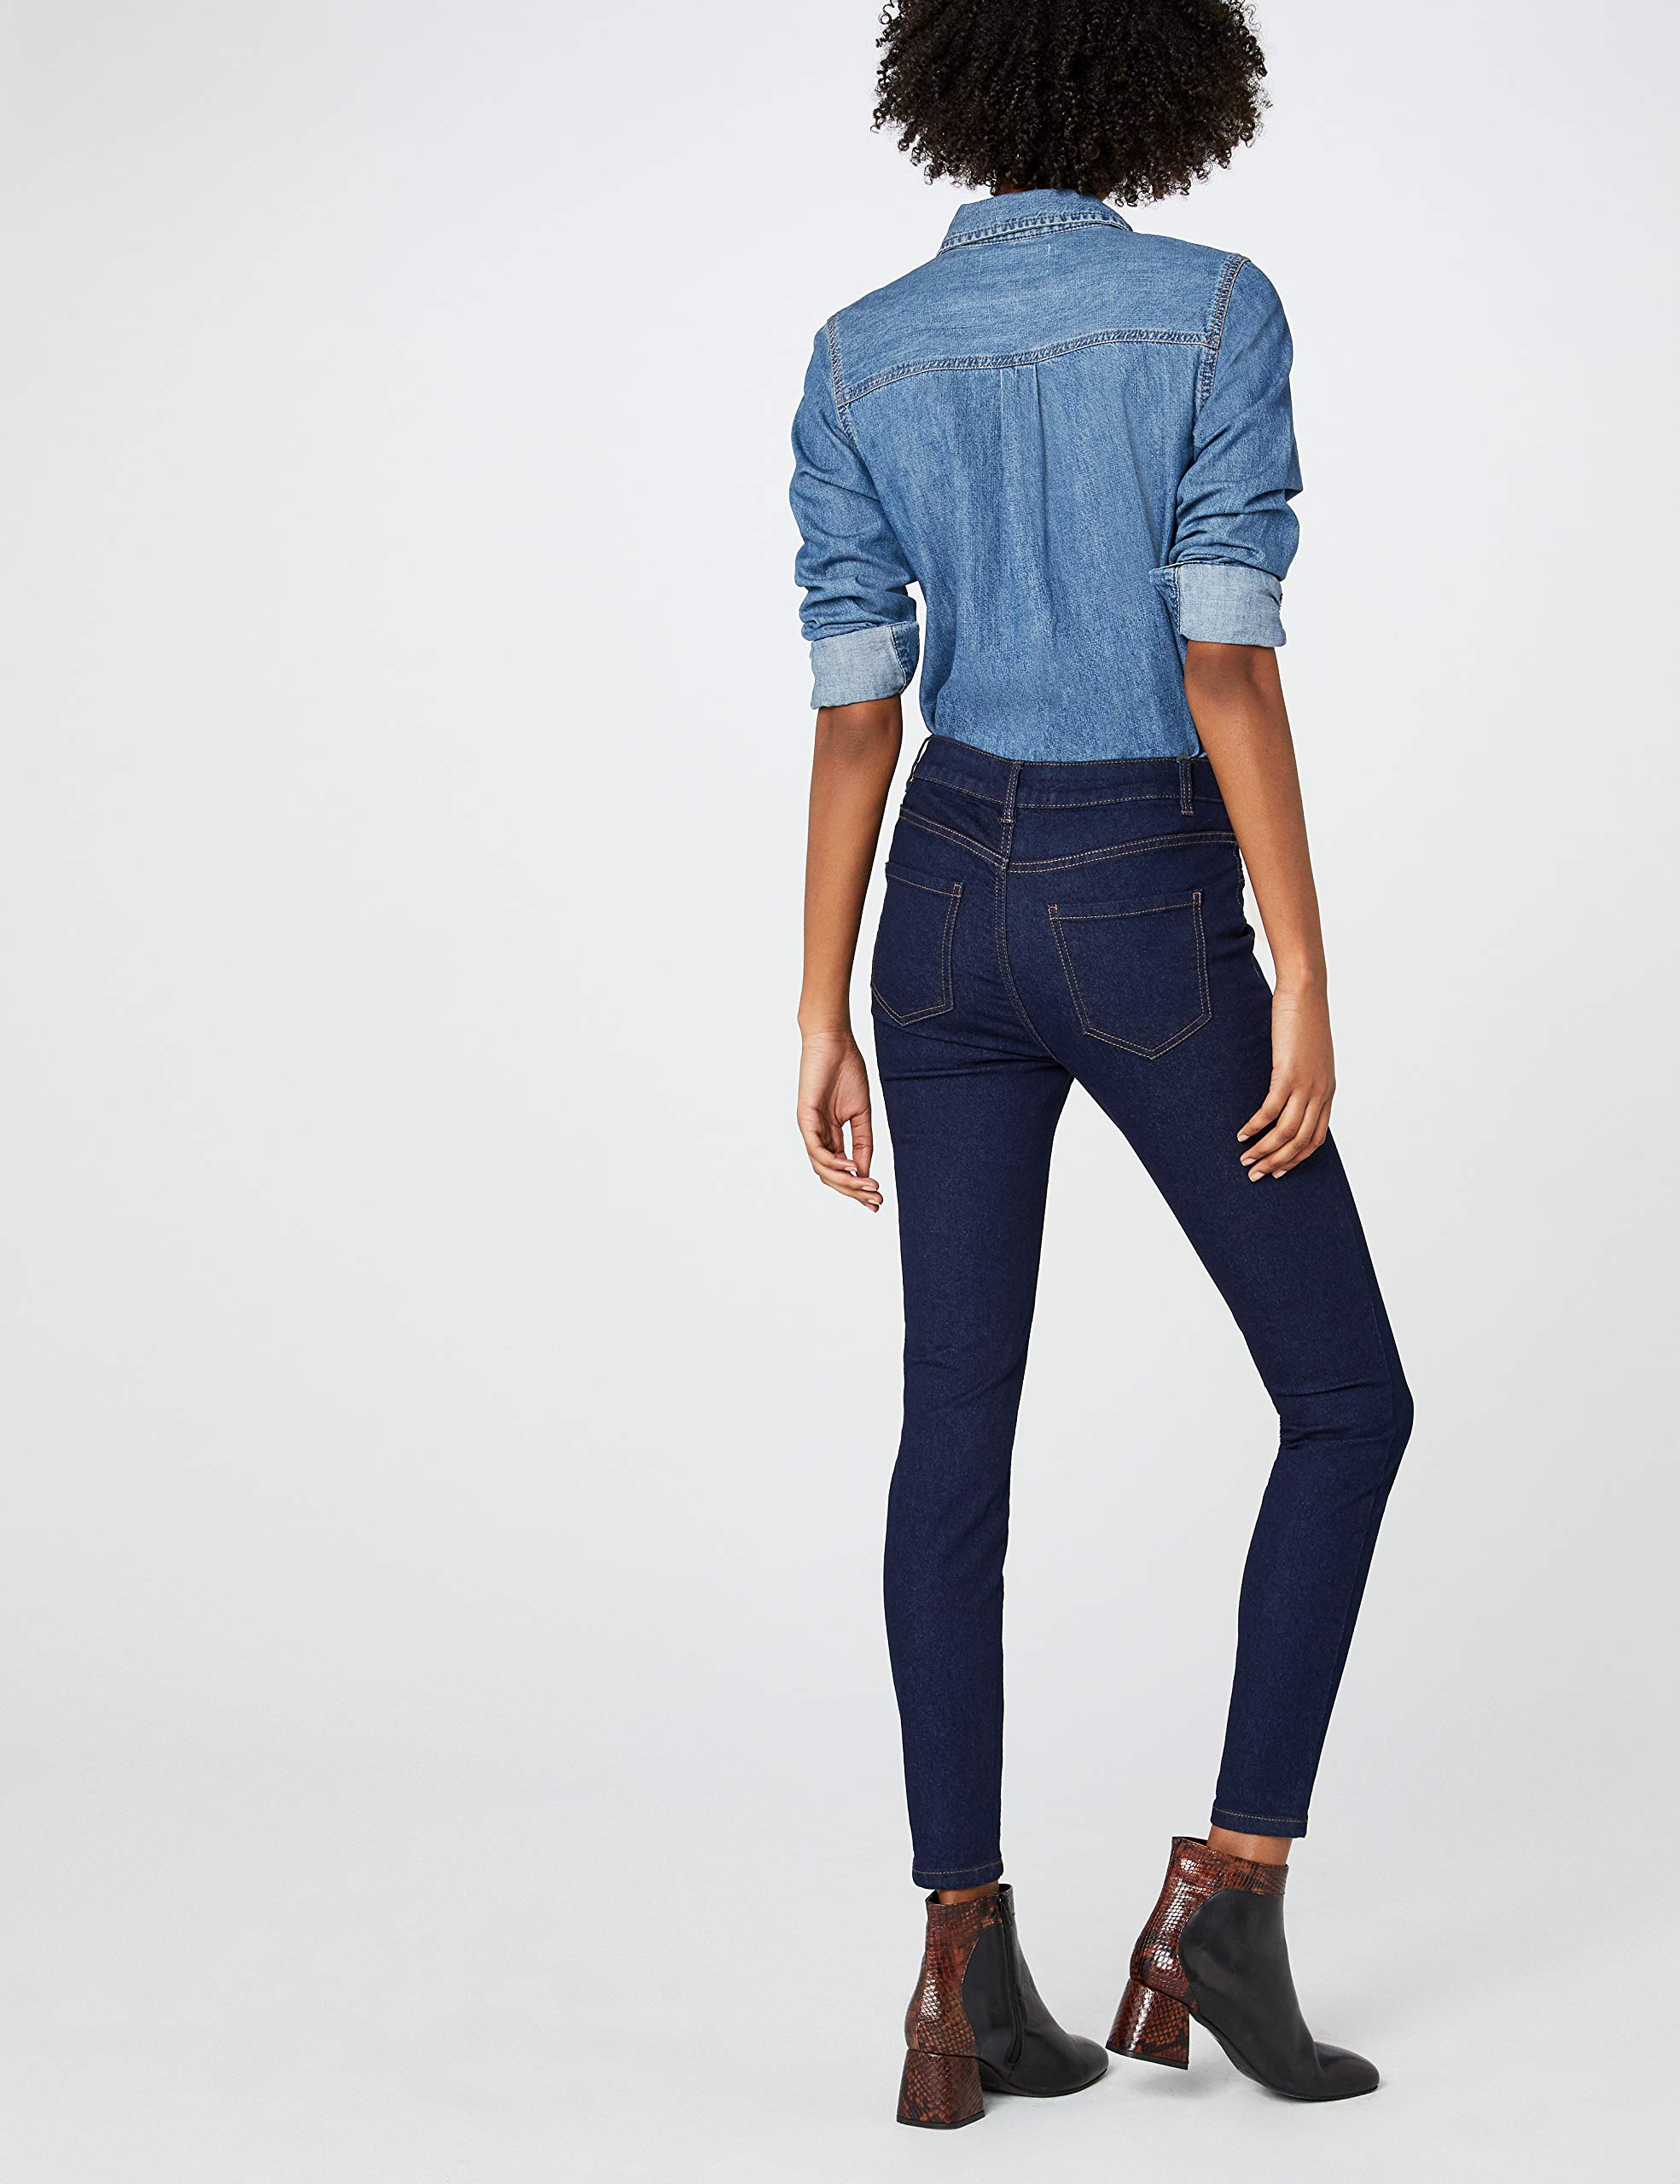 New Look Women's Skinny Jeans 58